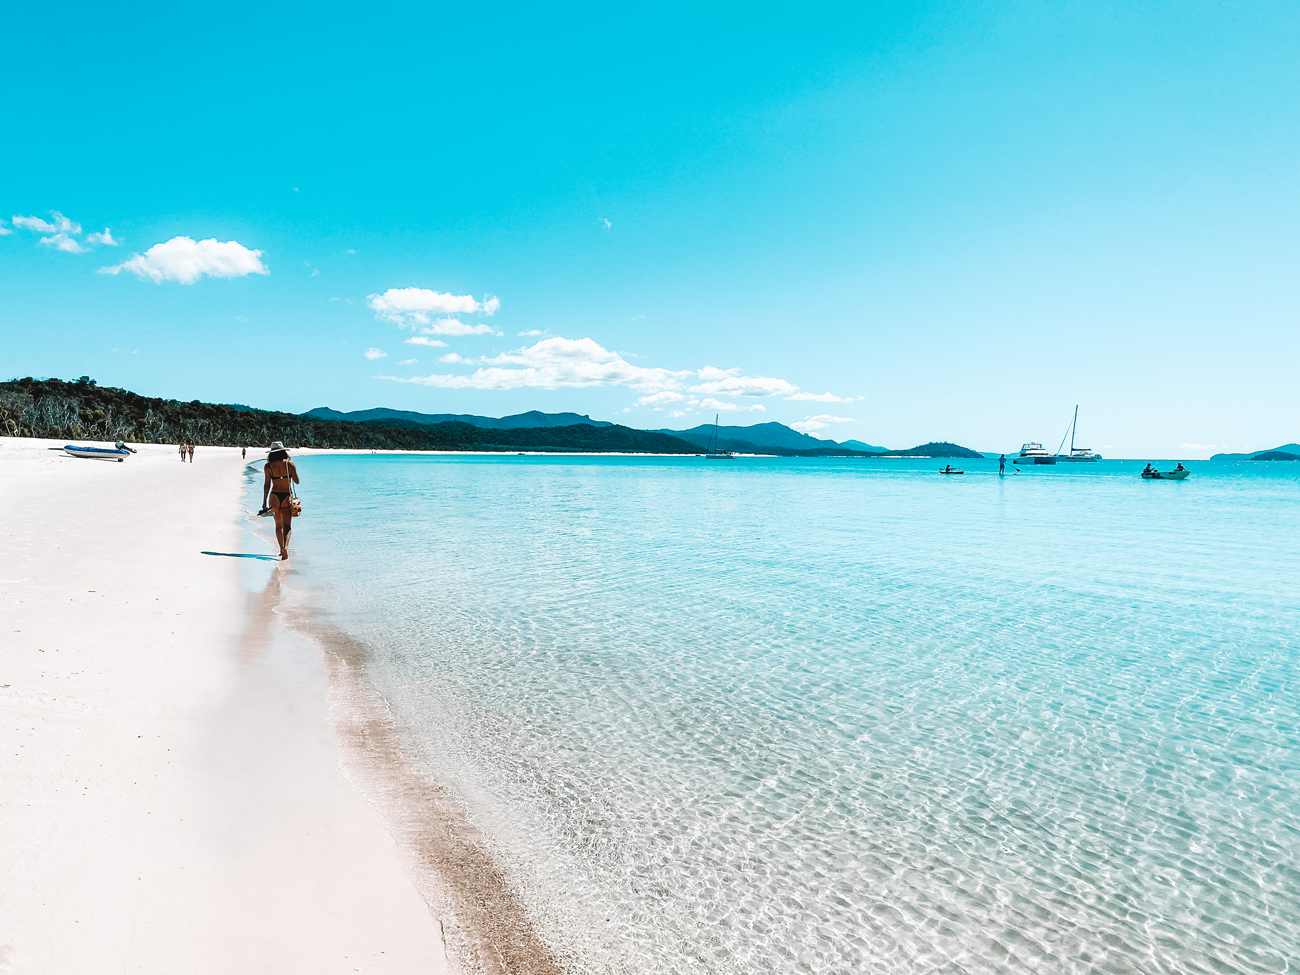 Spring into the Whitsundays with WAHI